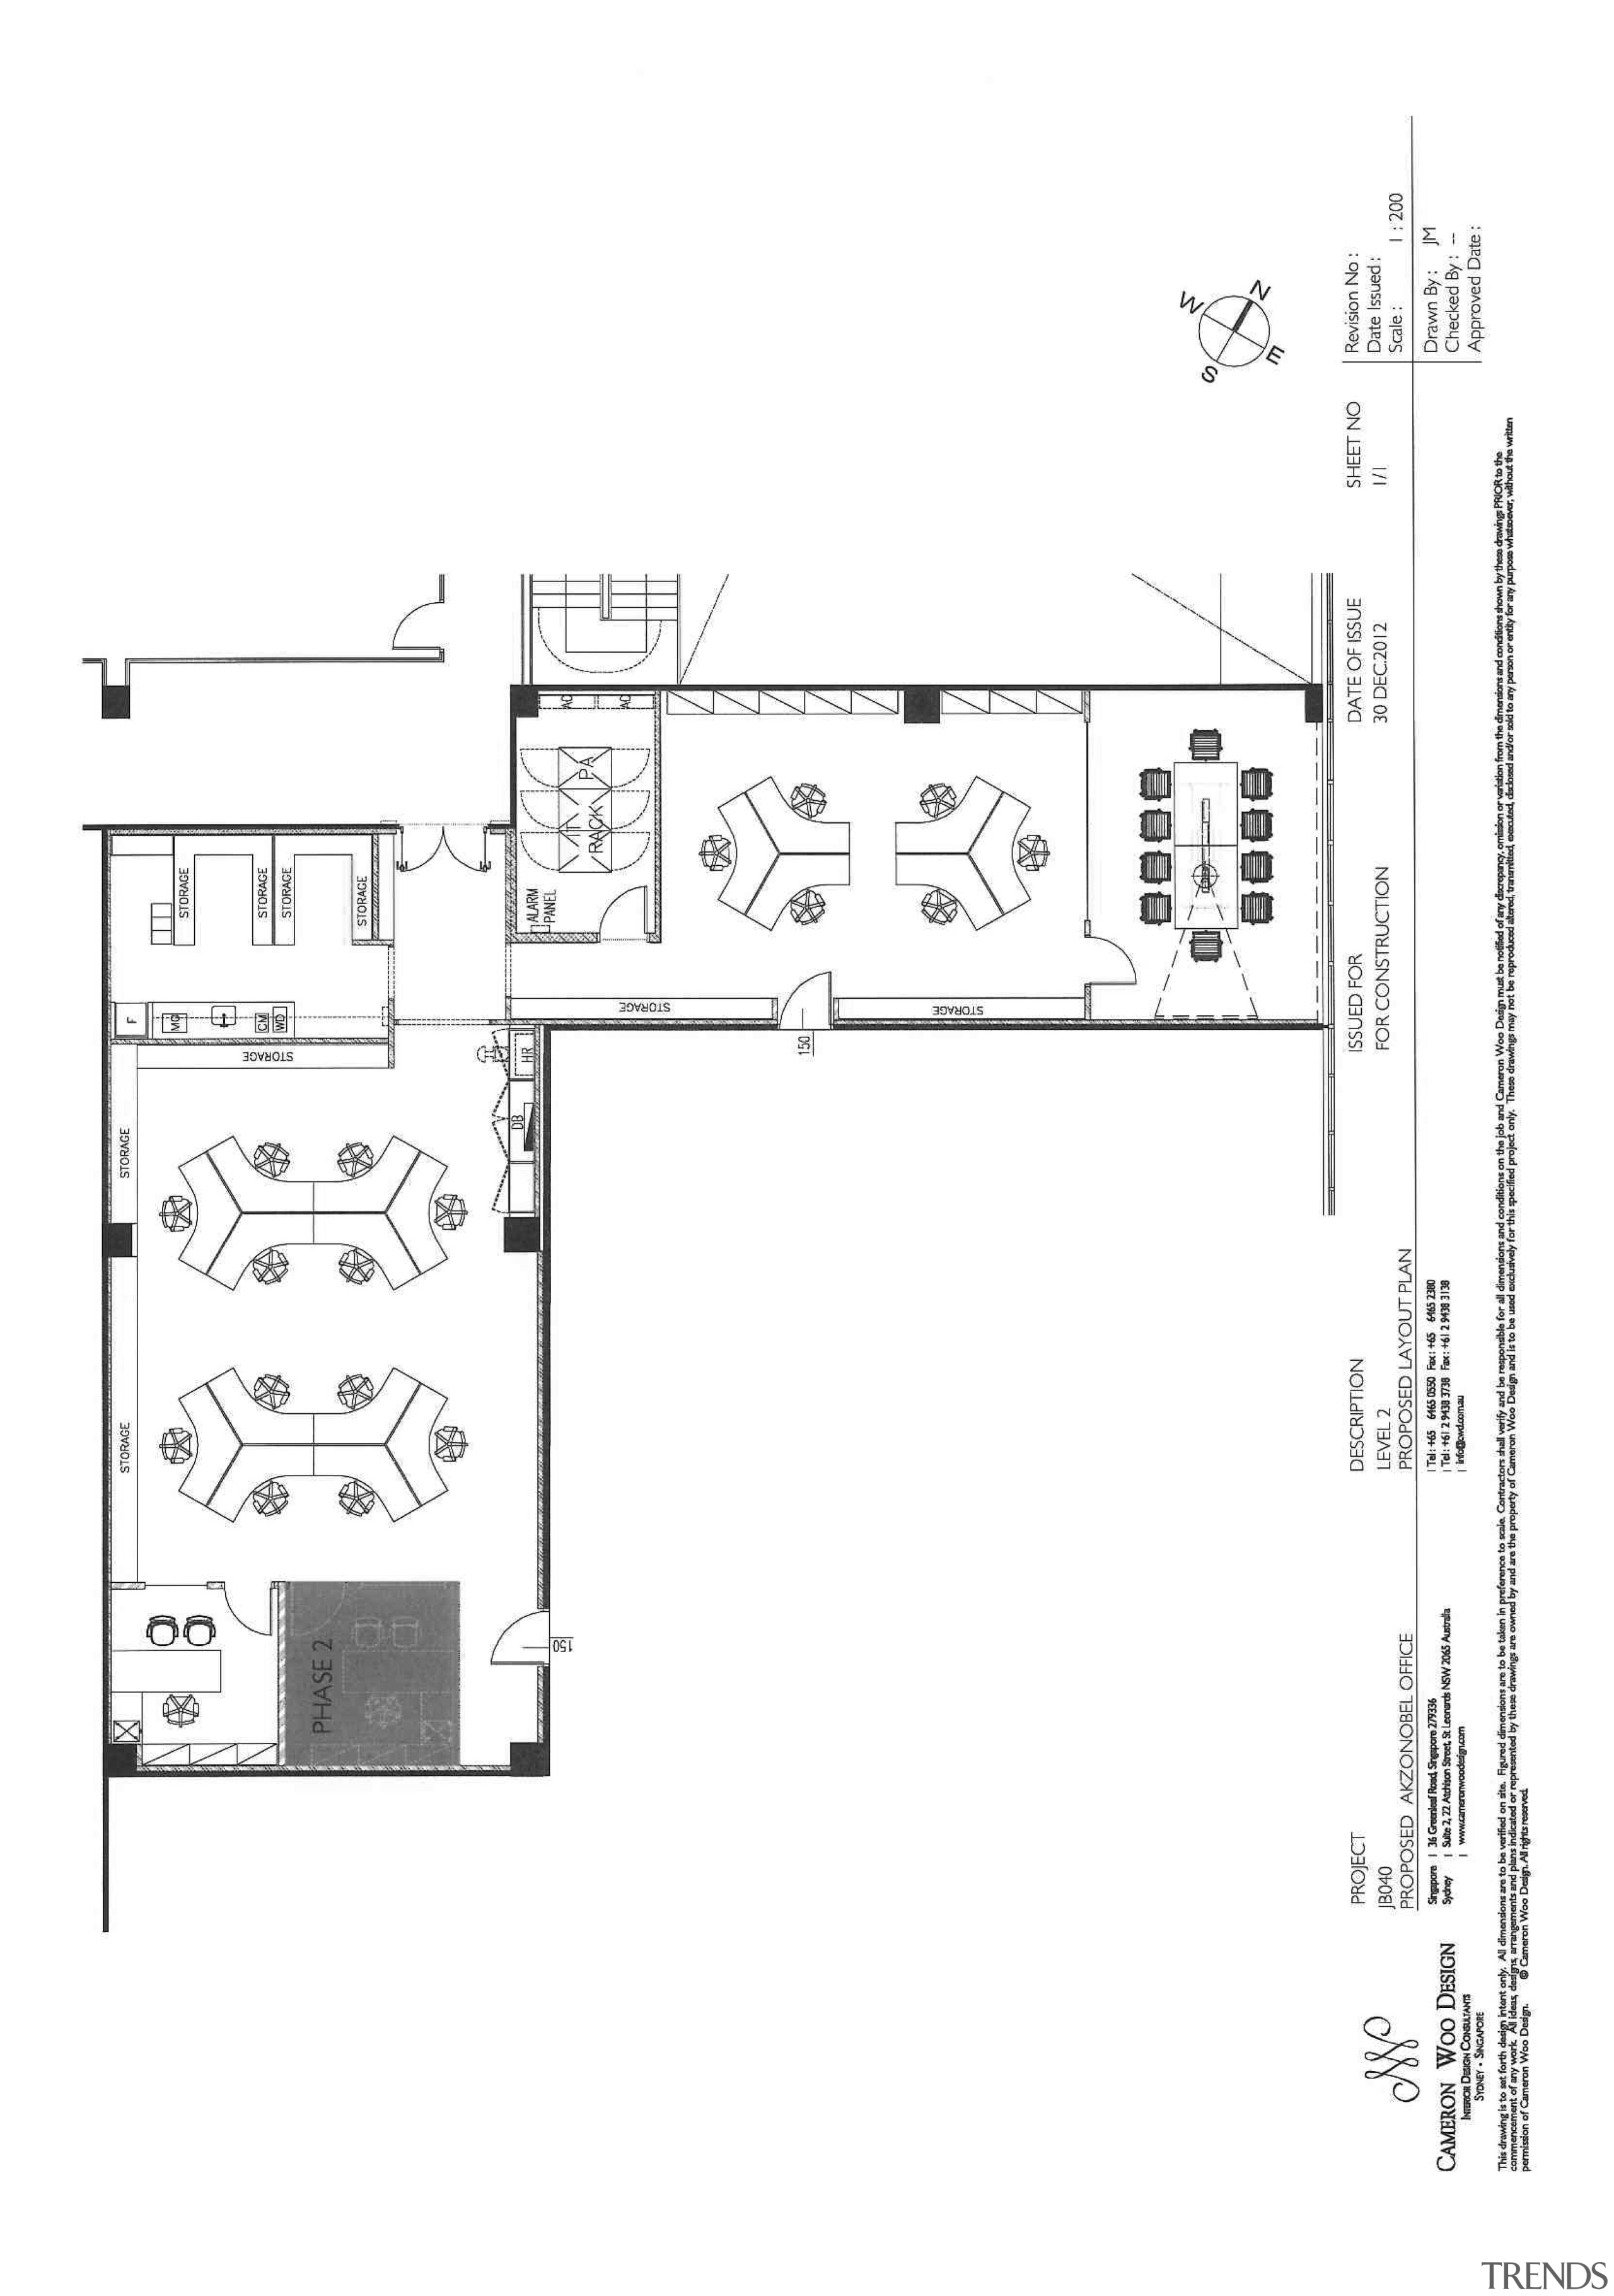 AkzoNobel House (Singapore) Interior design - AkzoNobel House area, artwork, black and white, design, diagram, drawing, floor plan, font, line, plan, product, product design, schematic, structure, technical drawing, text, white